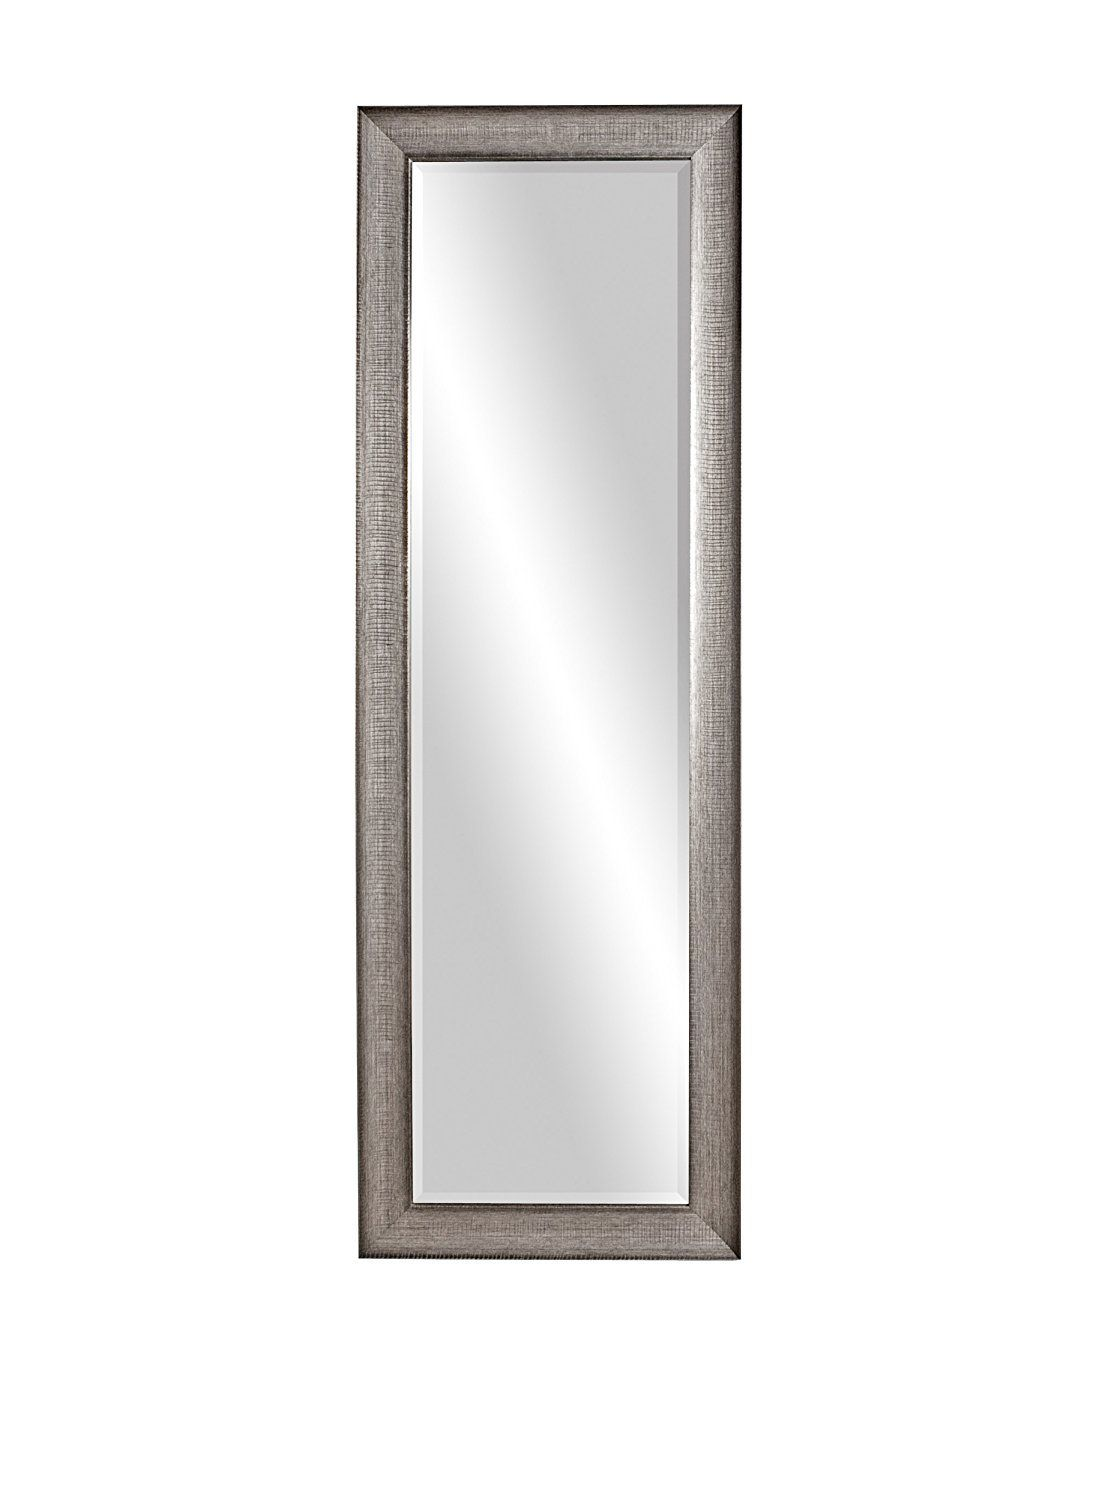 Howard Elliott 69048 Maverick Rectangular Mirror 24 X 72 Inch